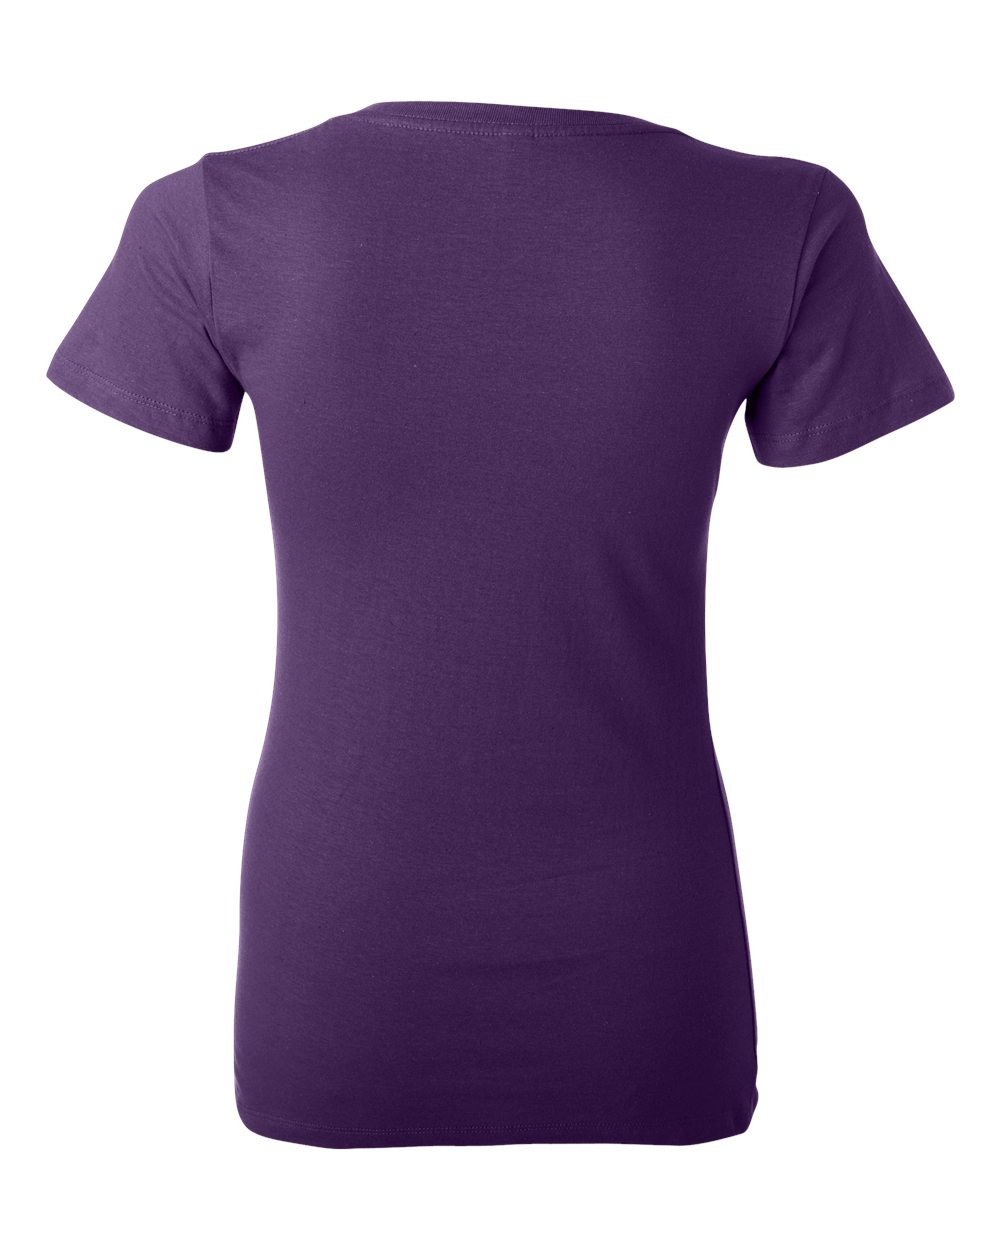 Bella-Canvas-Women-039-s-Jersey-Short-Sleeve-Deep-V-Neck-T-Shirt-B6035-S-2XL thumbnail 7